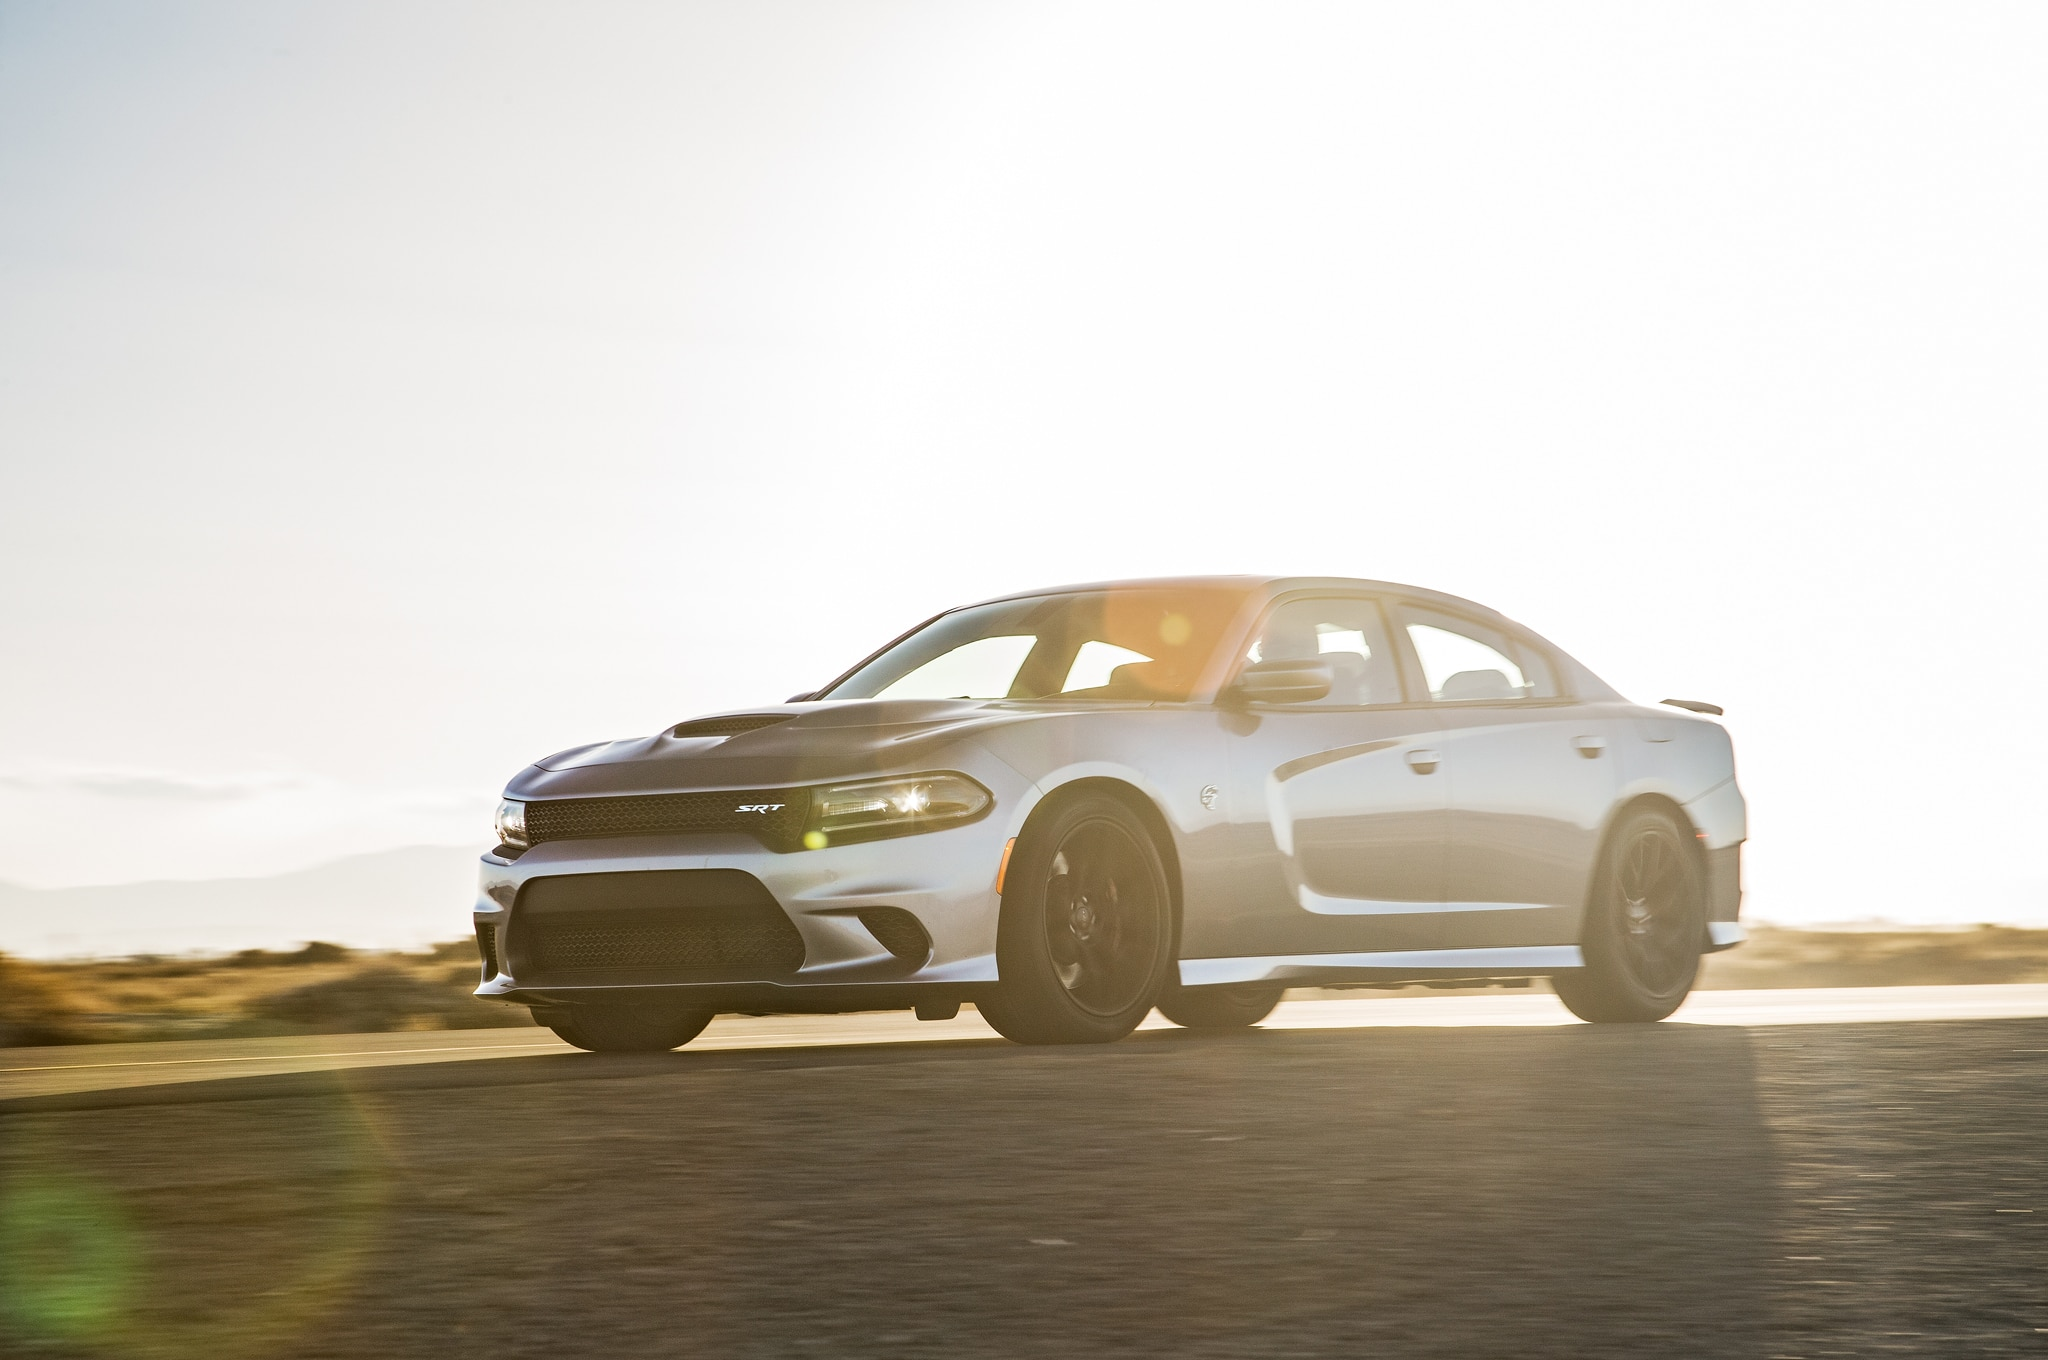 Flavors of Fast: 2015 Dodge Charger Hellcat vs. 2016 Nissan GT-R